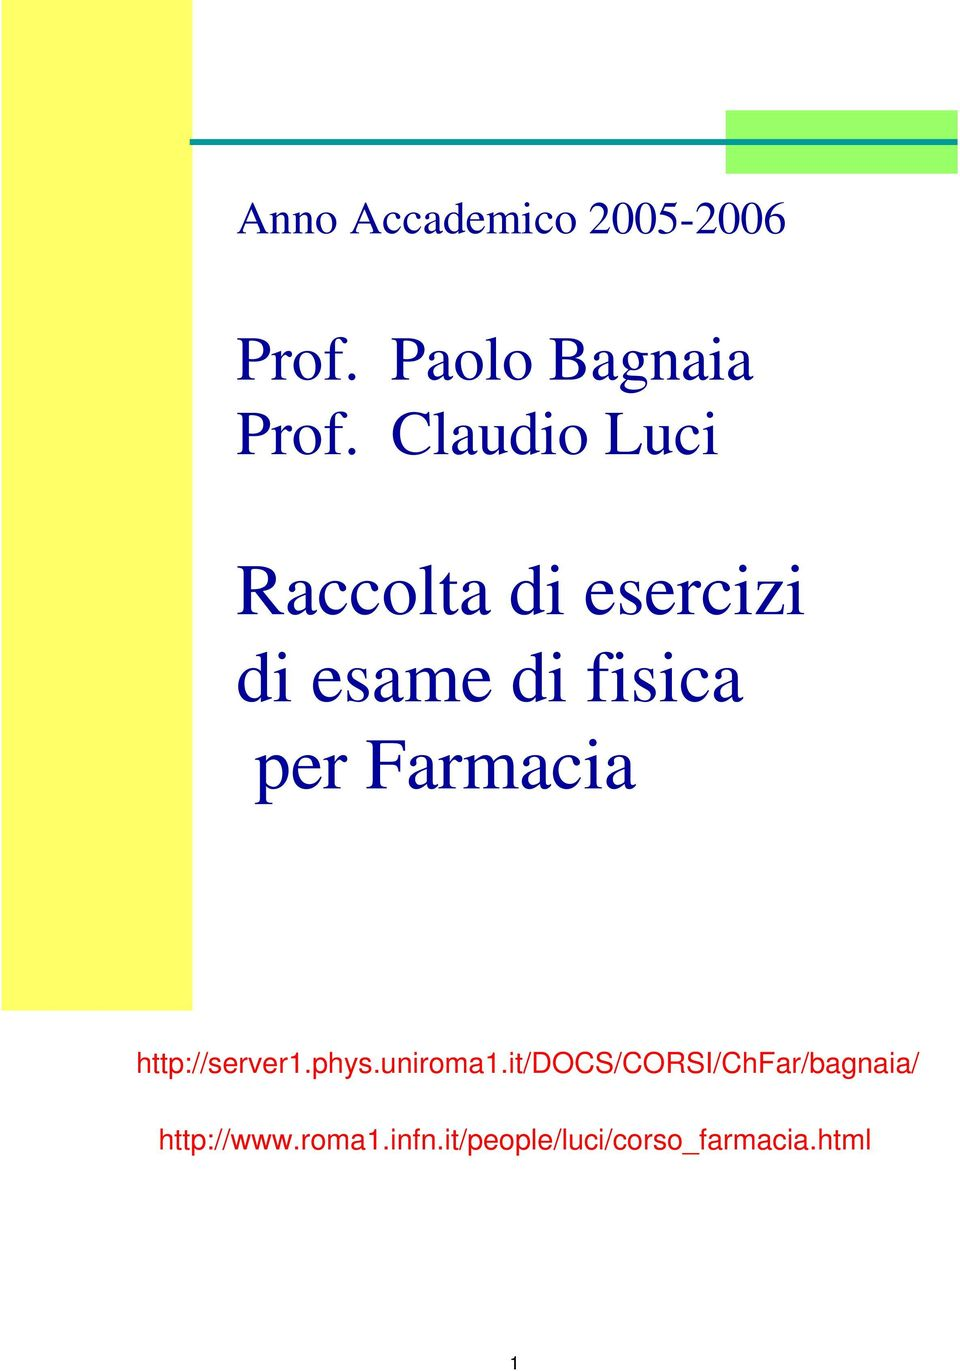 Farmacia http://server1.phys.uniroma1.